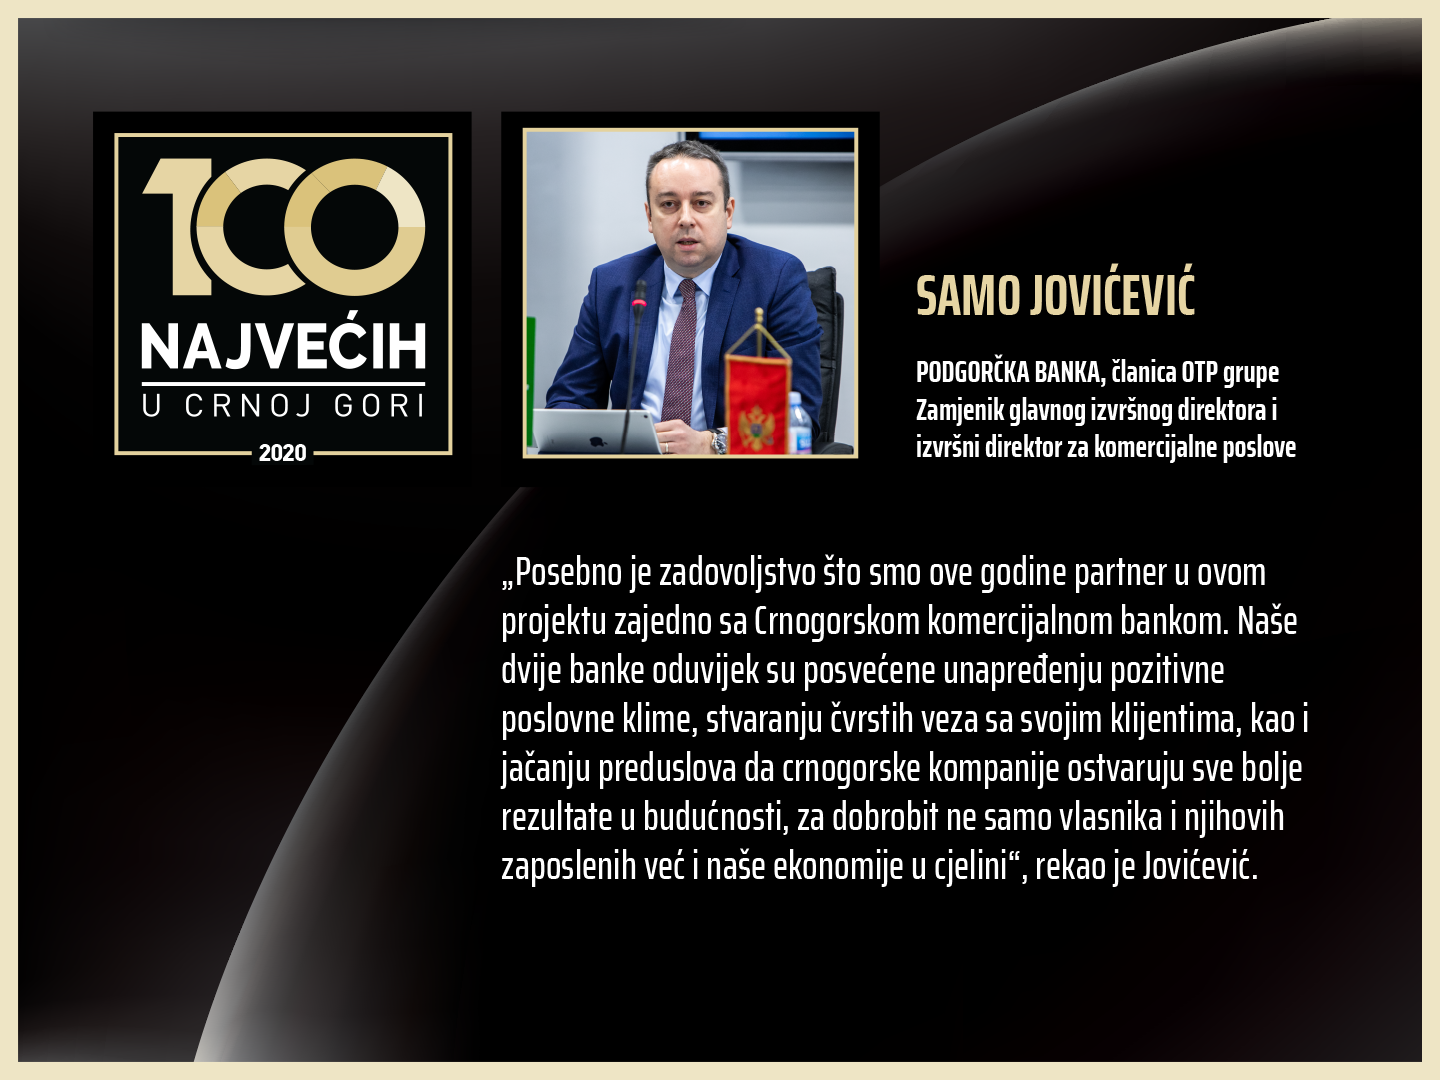 4 Jovicevic